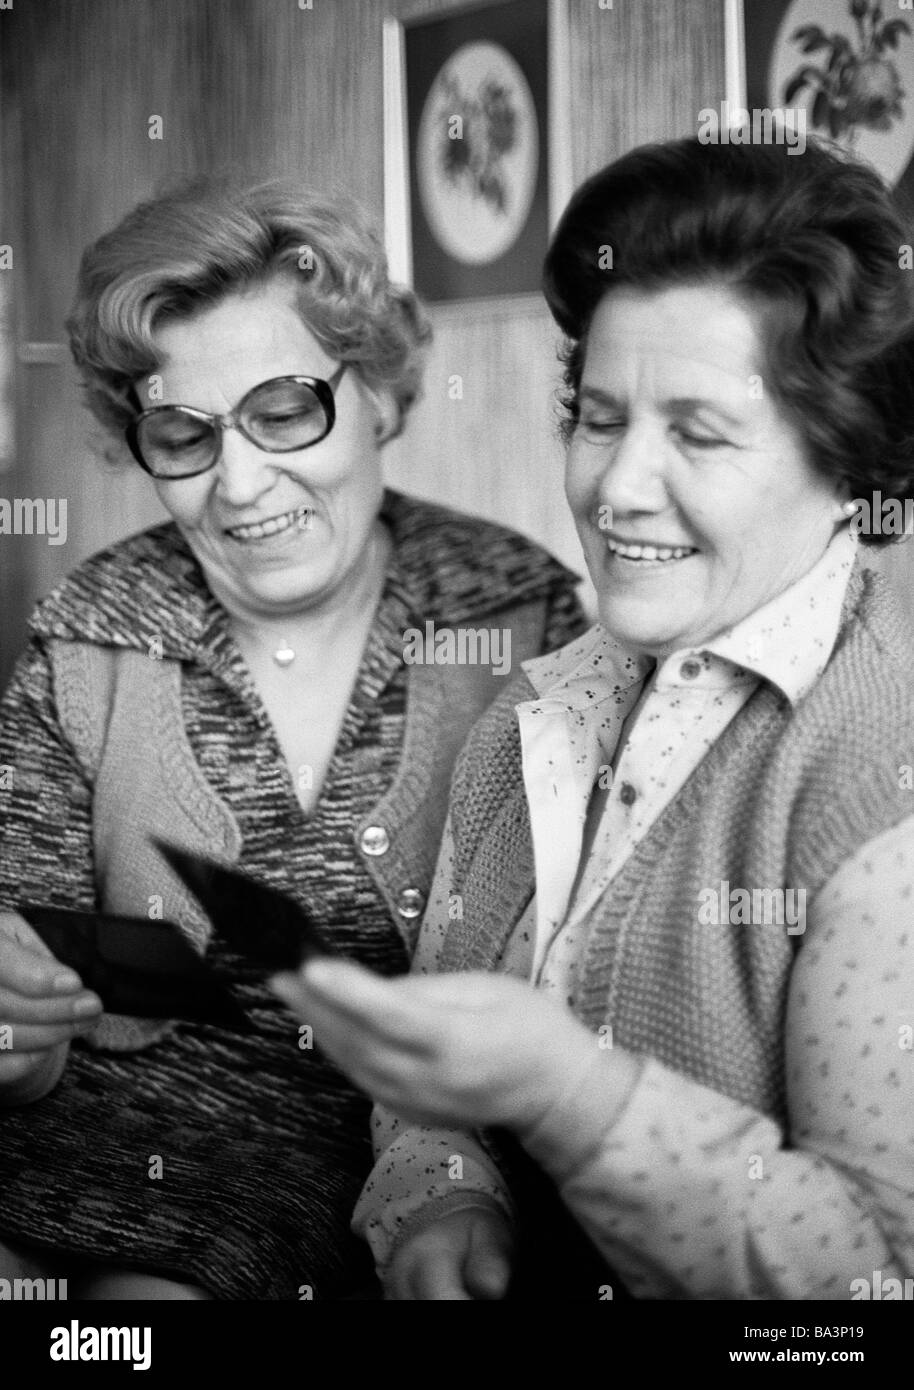 Seventies, black and white photo, people, two older women look at souvenir photos, memories, aged 60 to 70 years, - Stock Image